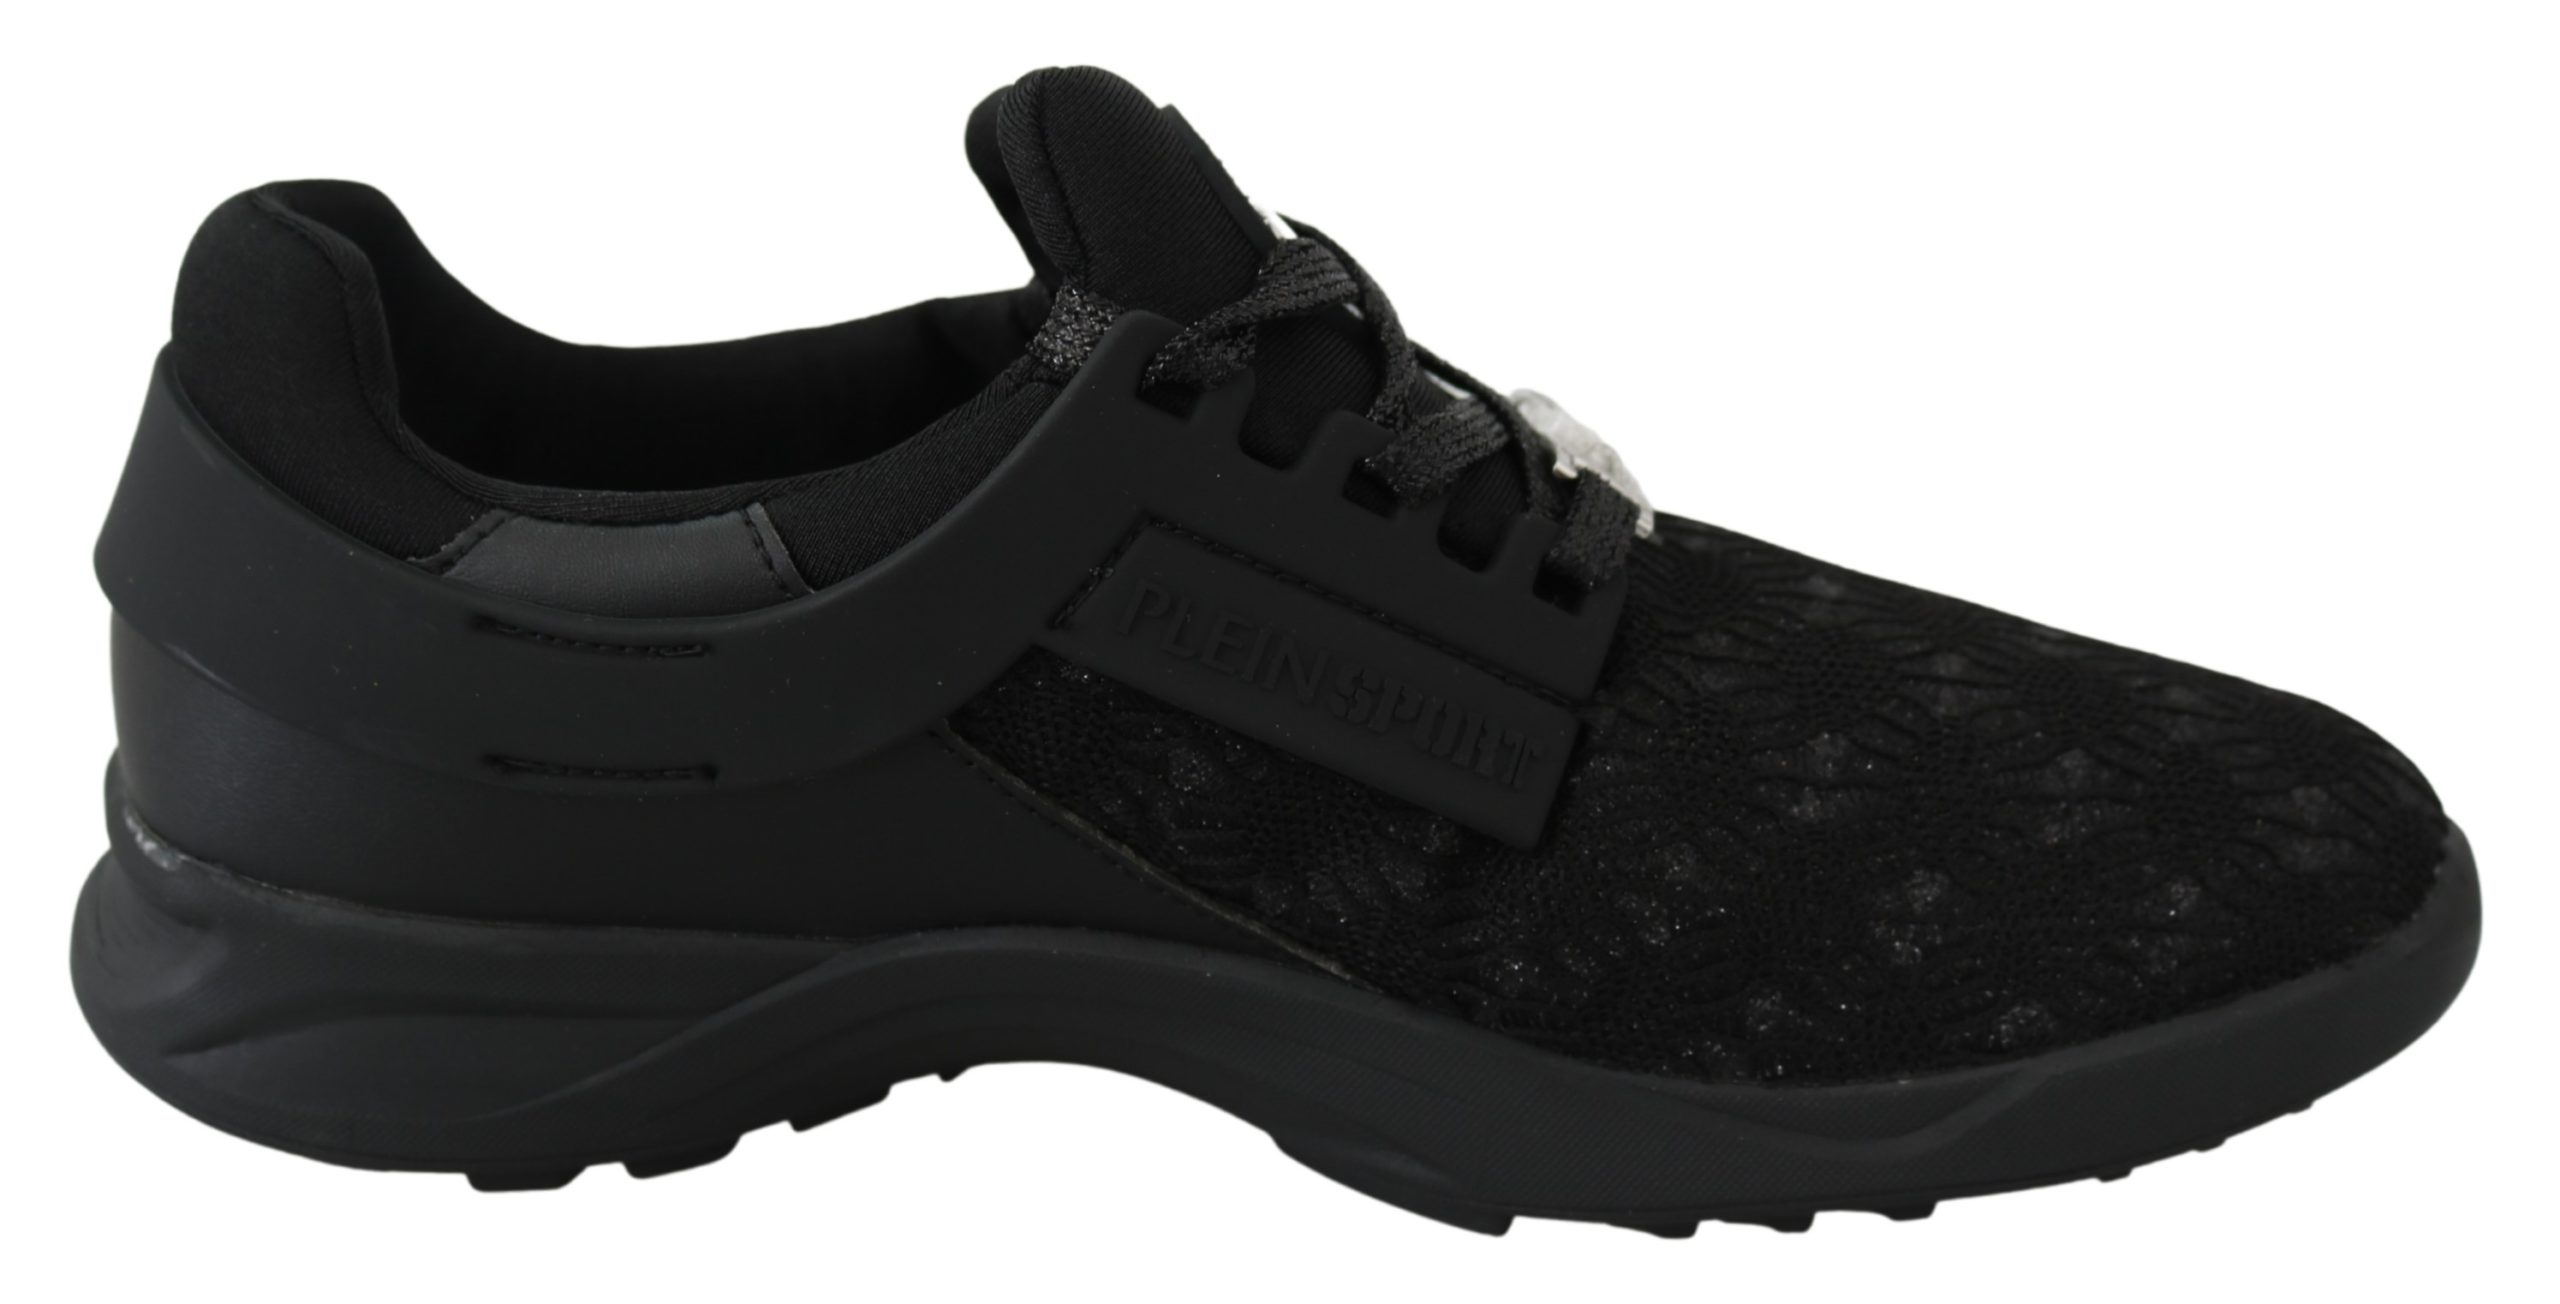 Black Polyester Runner Beth Sneakers Shoes - EU38/US8